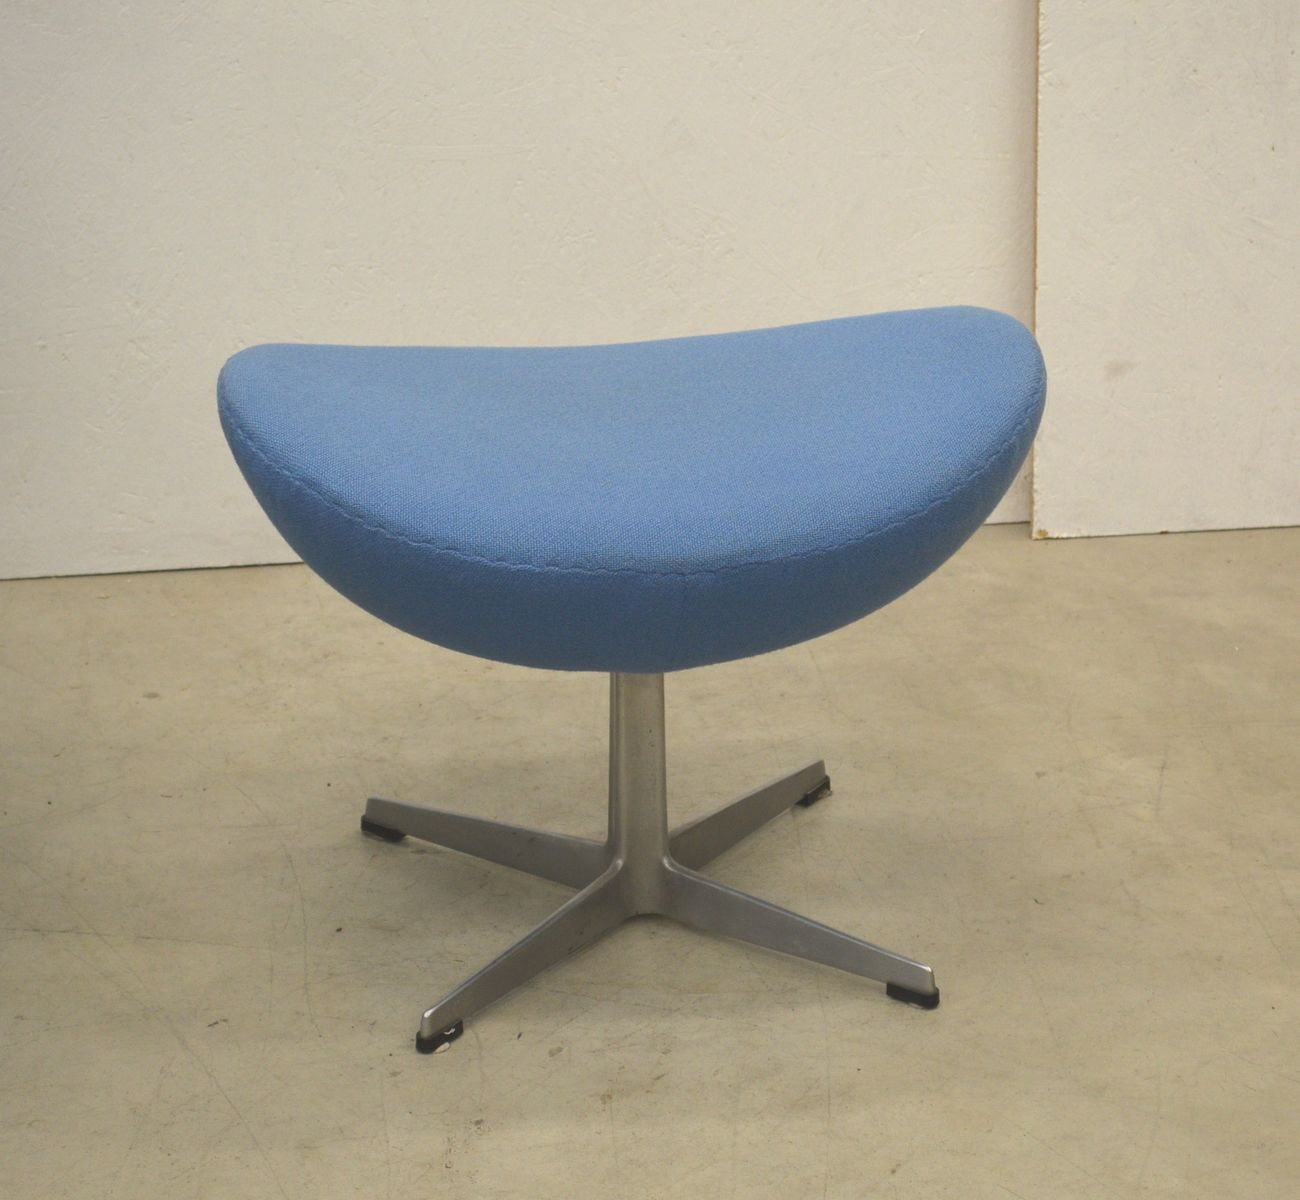 Pouf Design Egg Pouf Jacobsen : Egg chair ottoman by arne jacobsen for fritz hansen